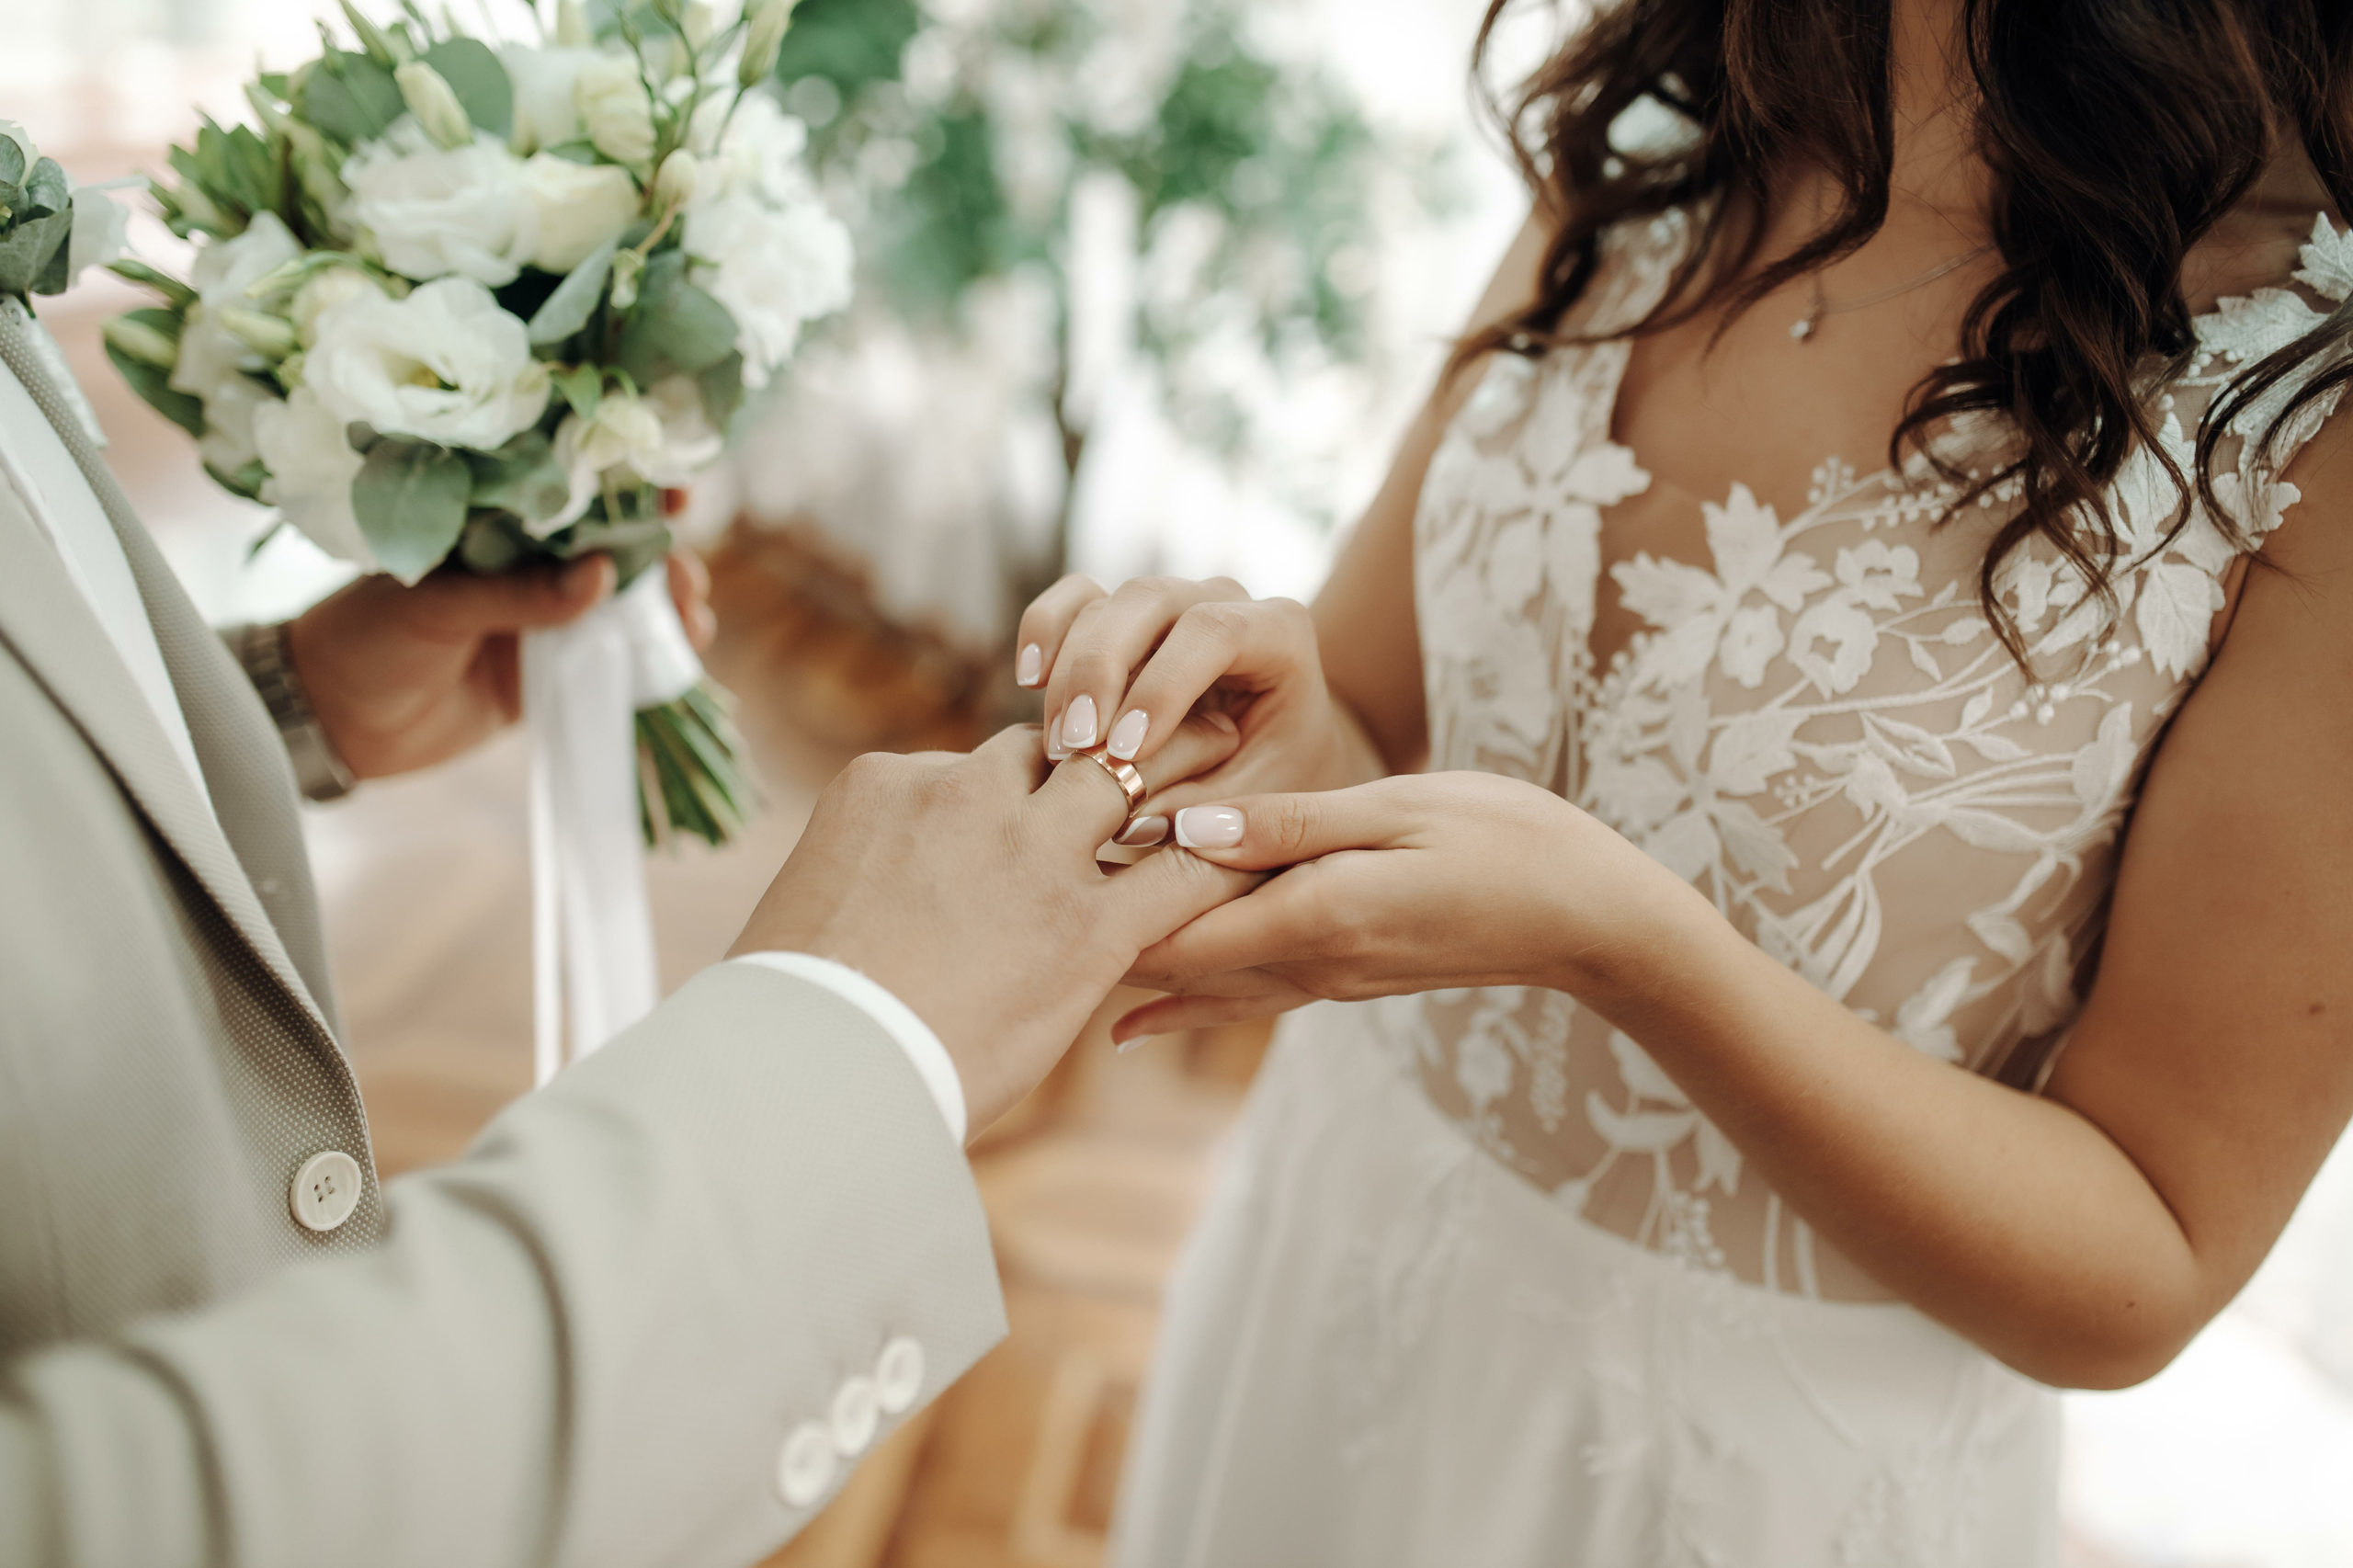 Green Card Marriage Information - Texas Immigration Lawyers - Nanthaveth & Associates